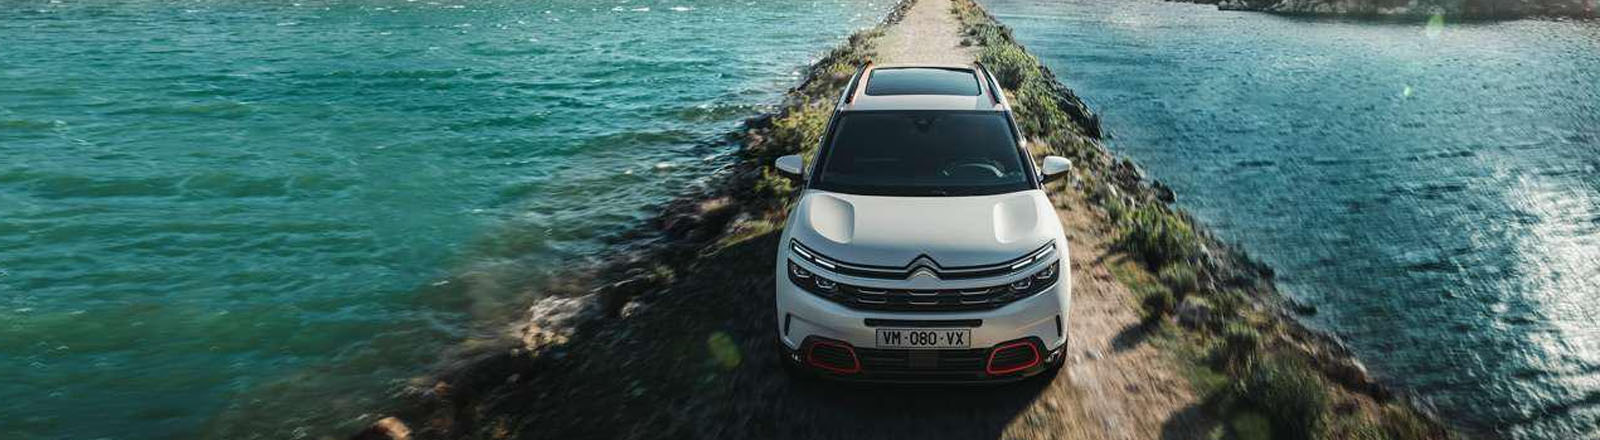 Slider Citroen C5 Aircross SUV